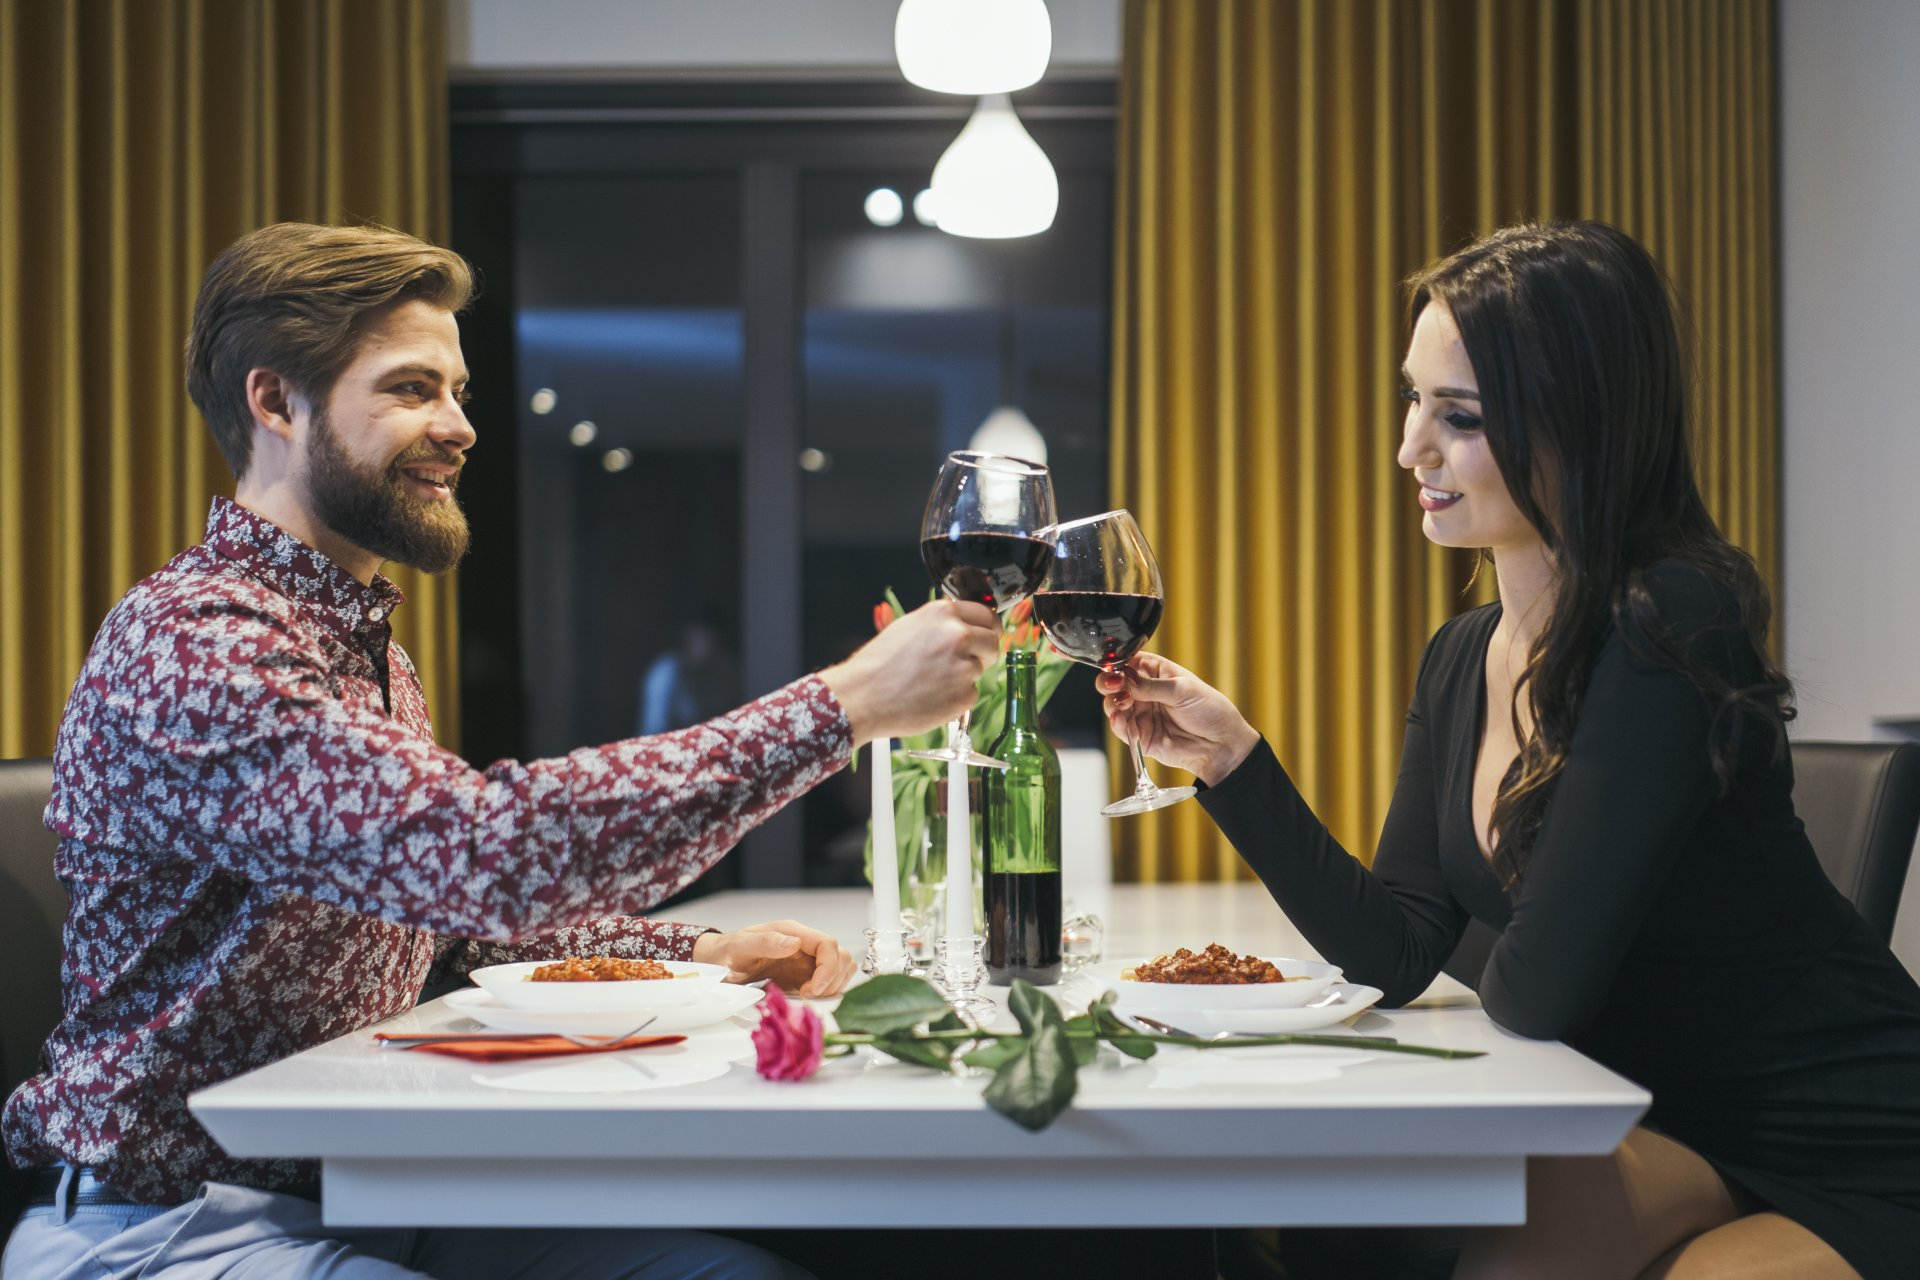 Have you tried virtual speed dating